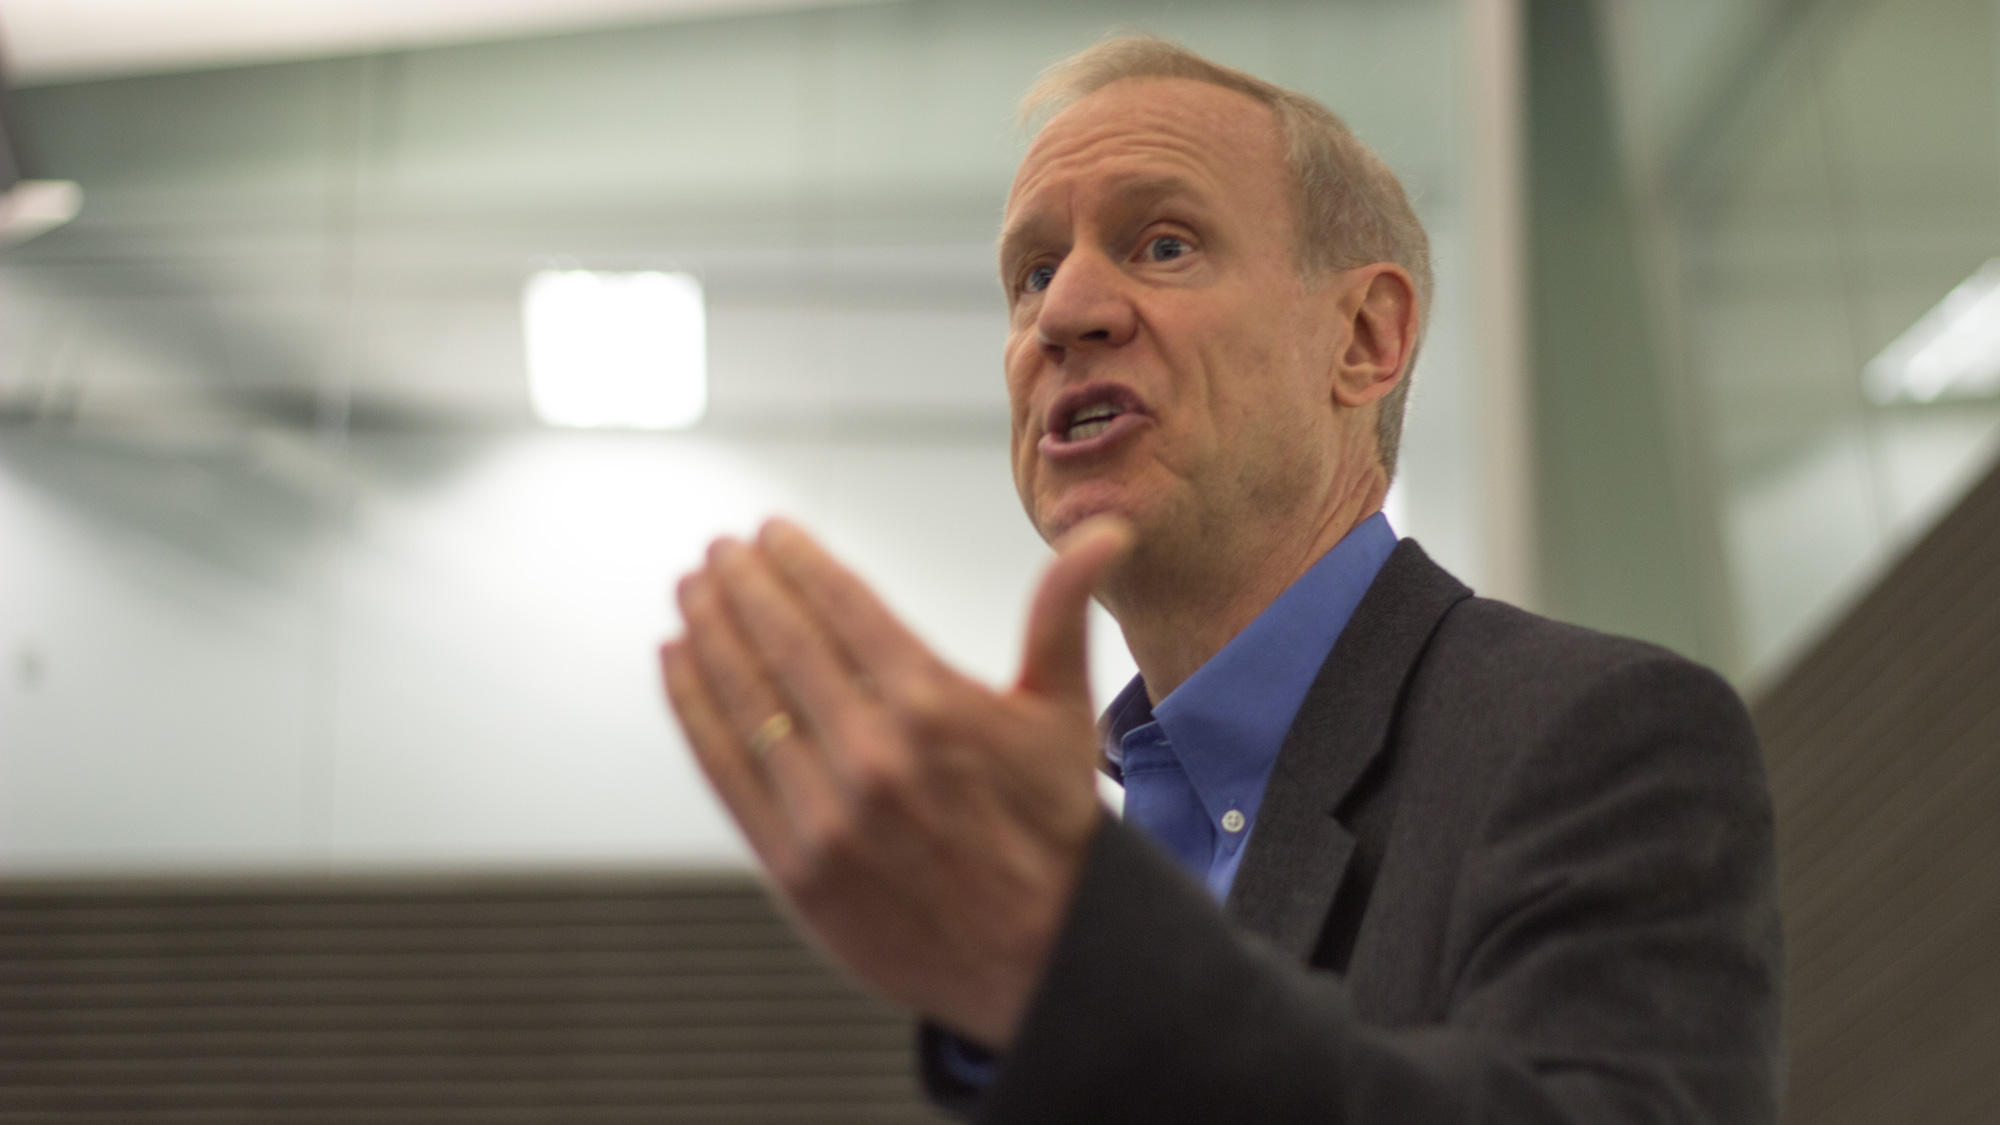 Rauner: Expanding Abortion Coverage Too Controversial